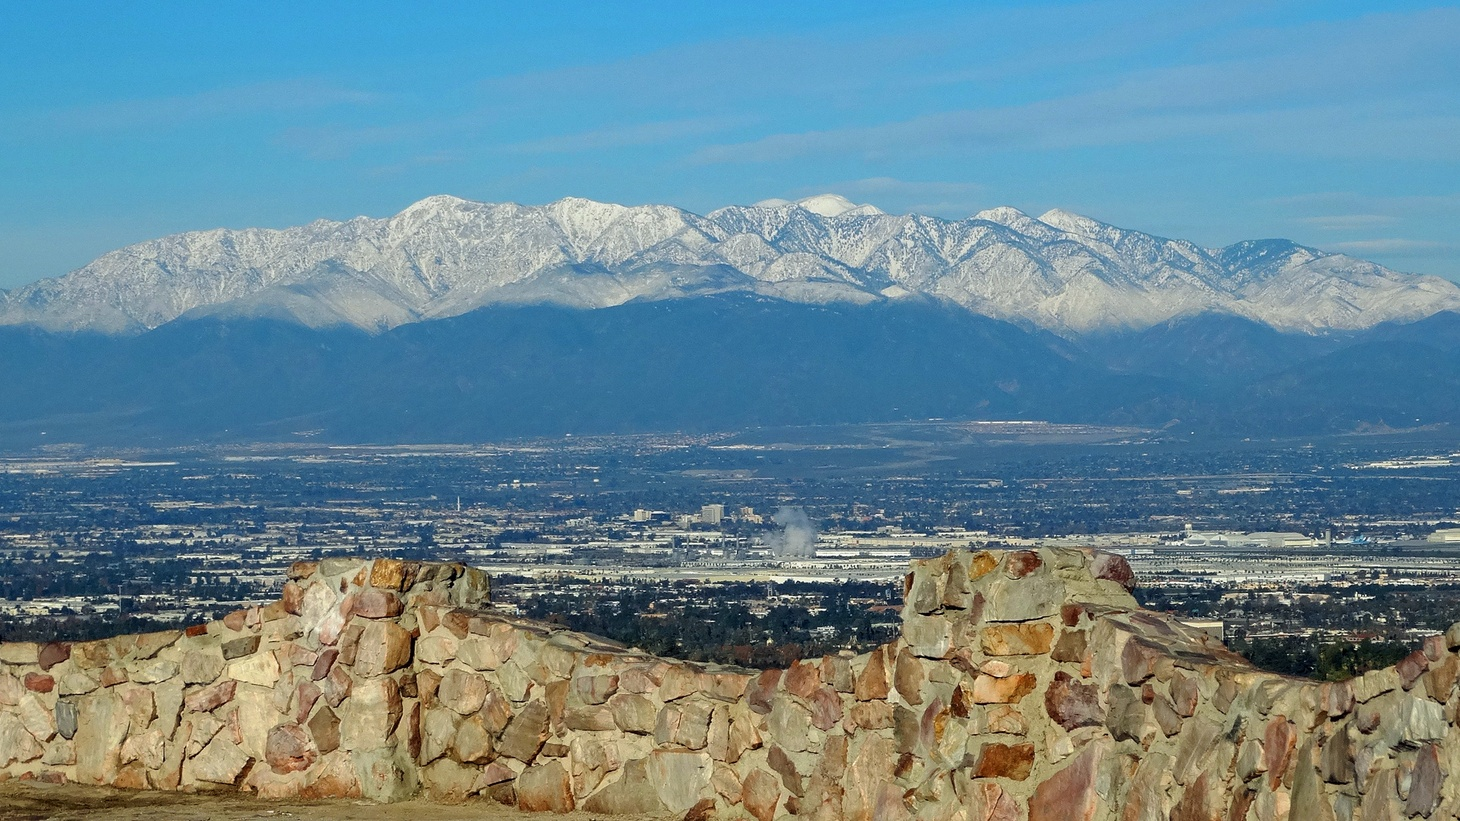 San Gabriel Mountains over Inland Empire, CA.